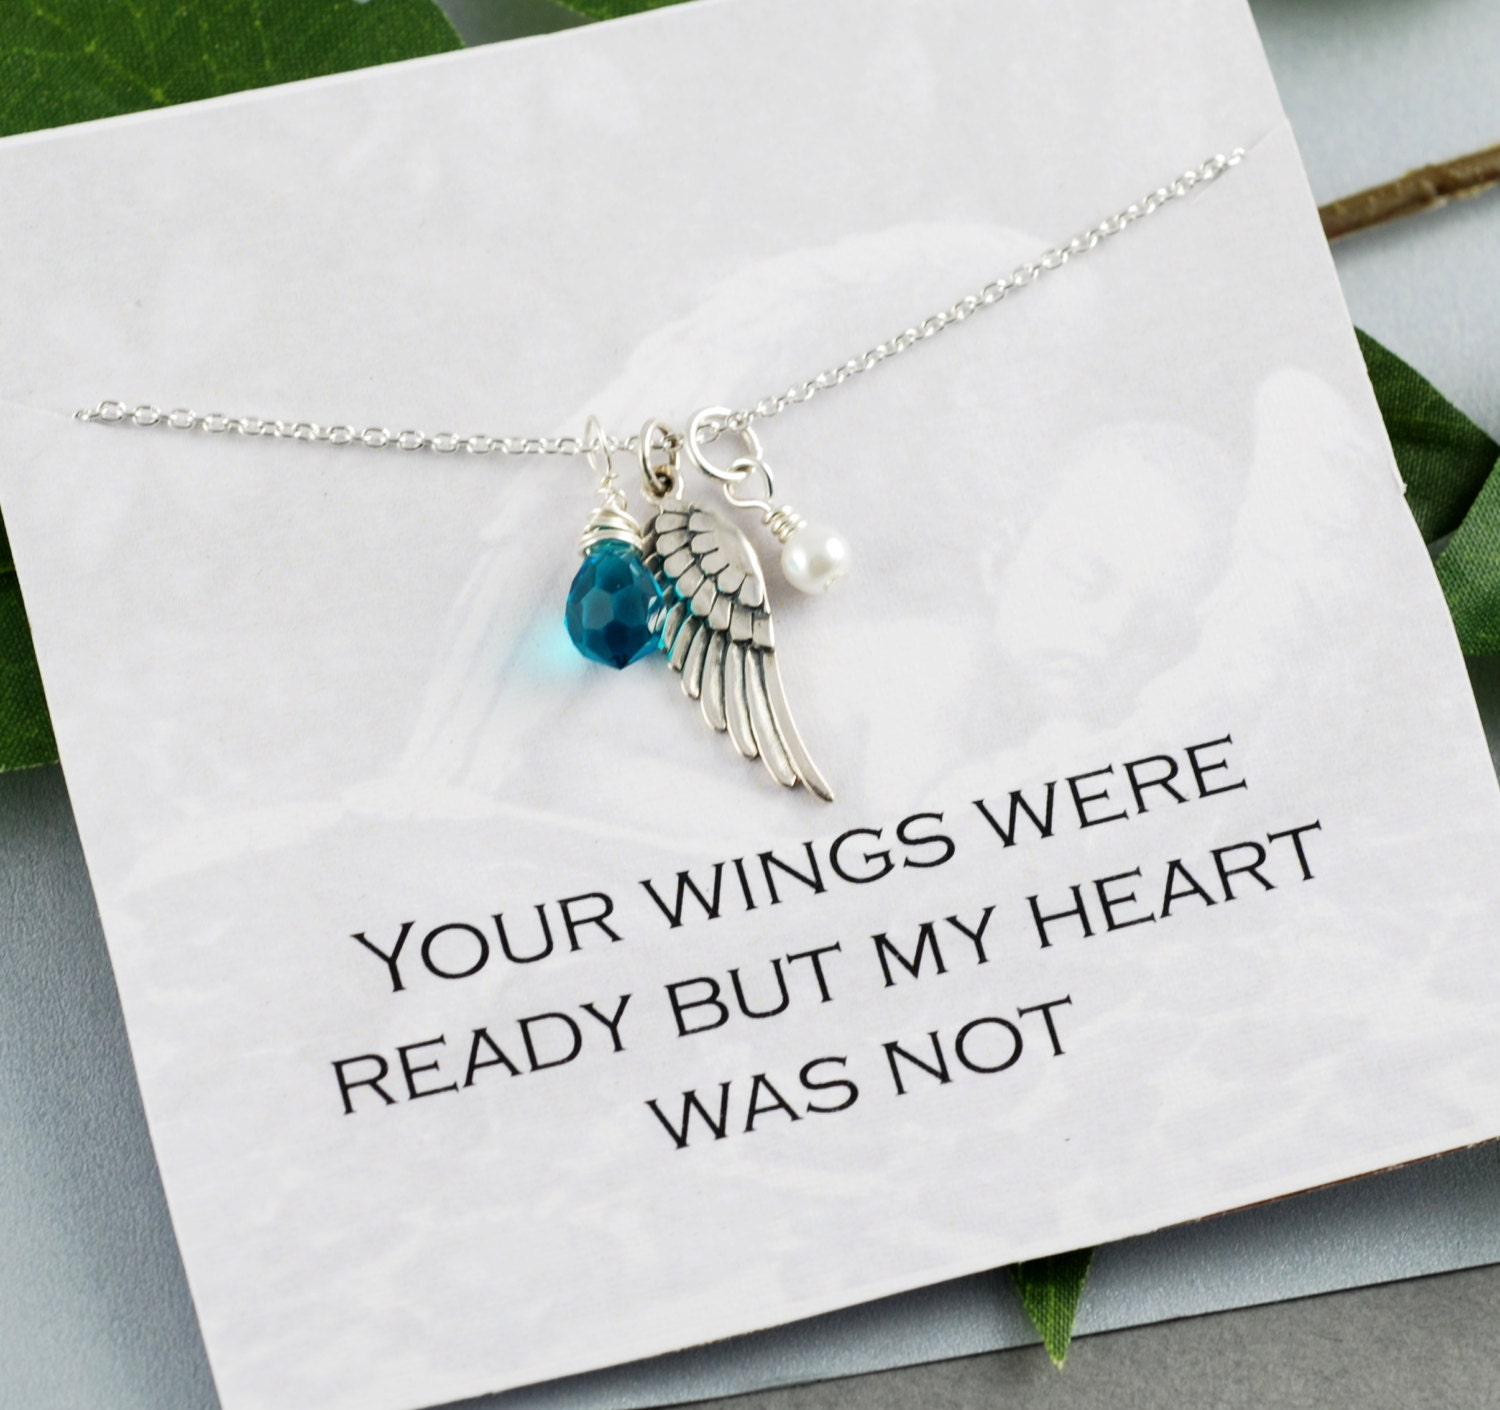 angel gift of birthstone miscarry mom miscarriage necklace il listing jewelry reserved fullxfull stillborn an childloss